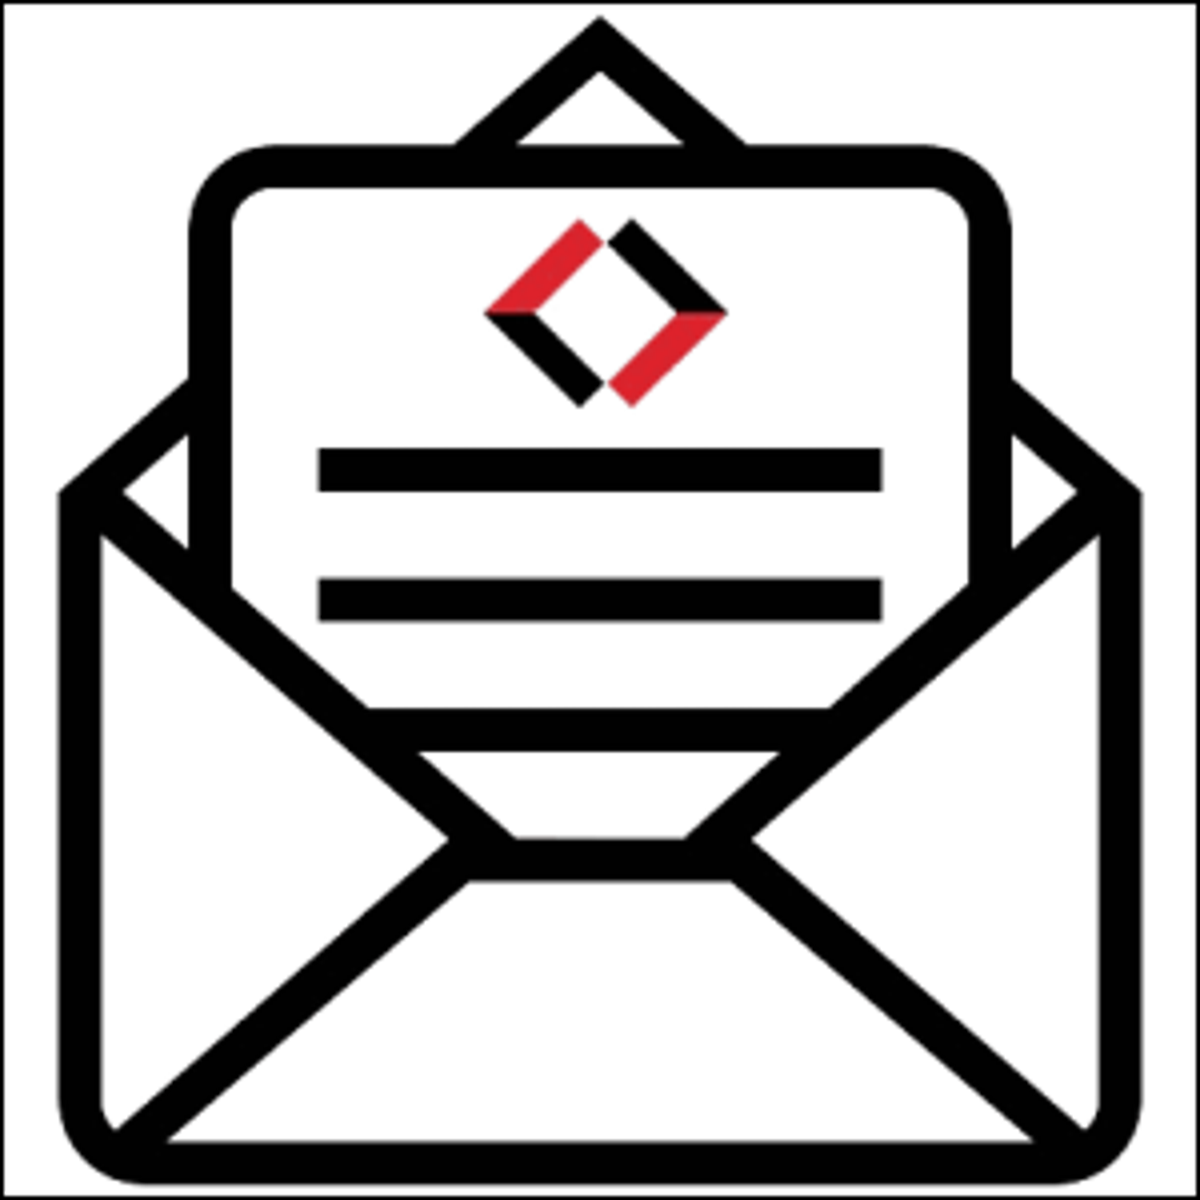 A general and generic email logo.